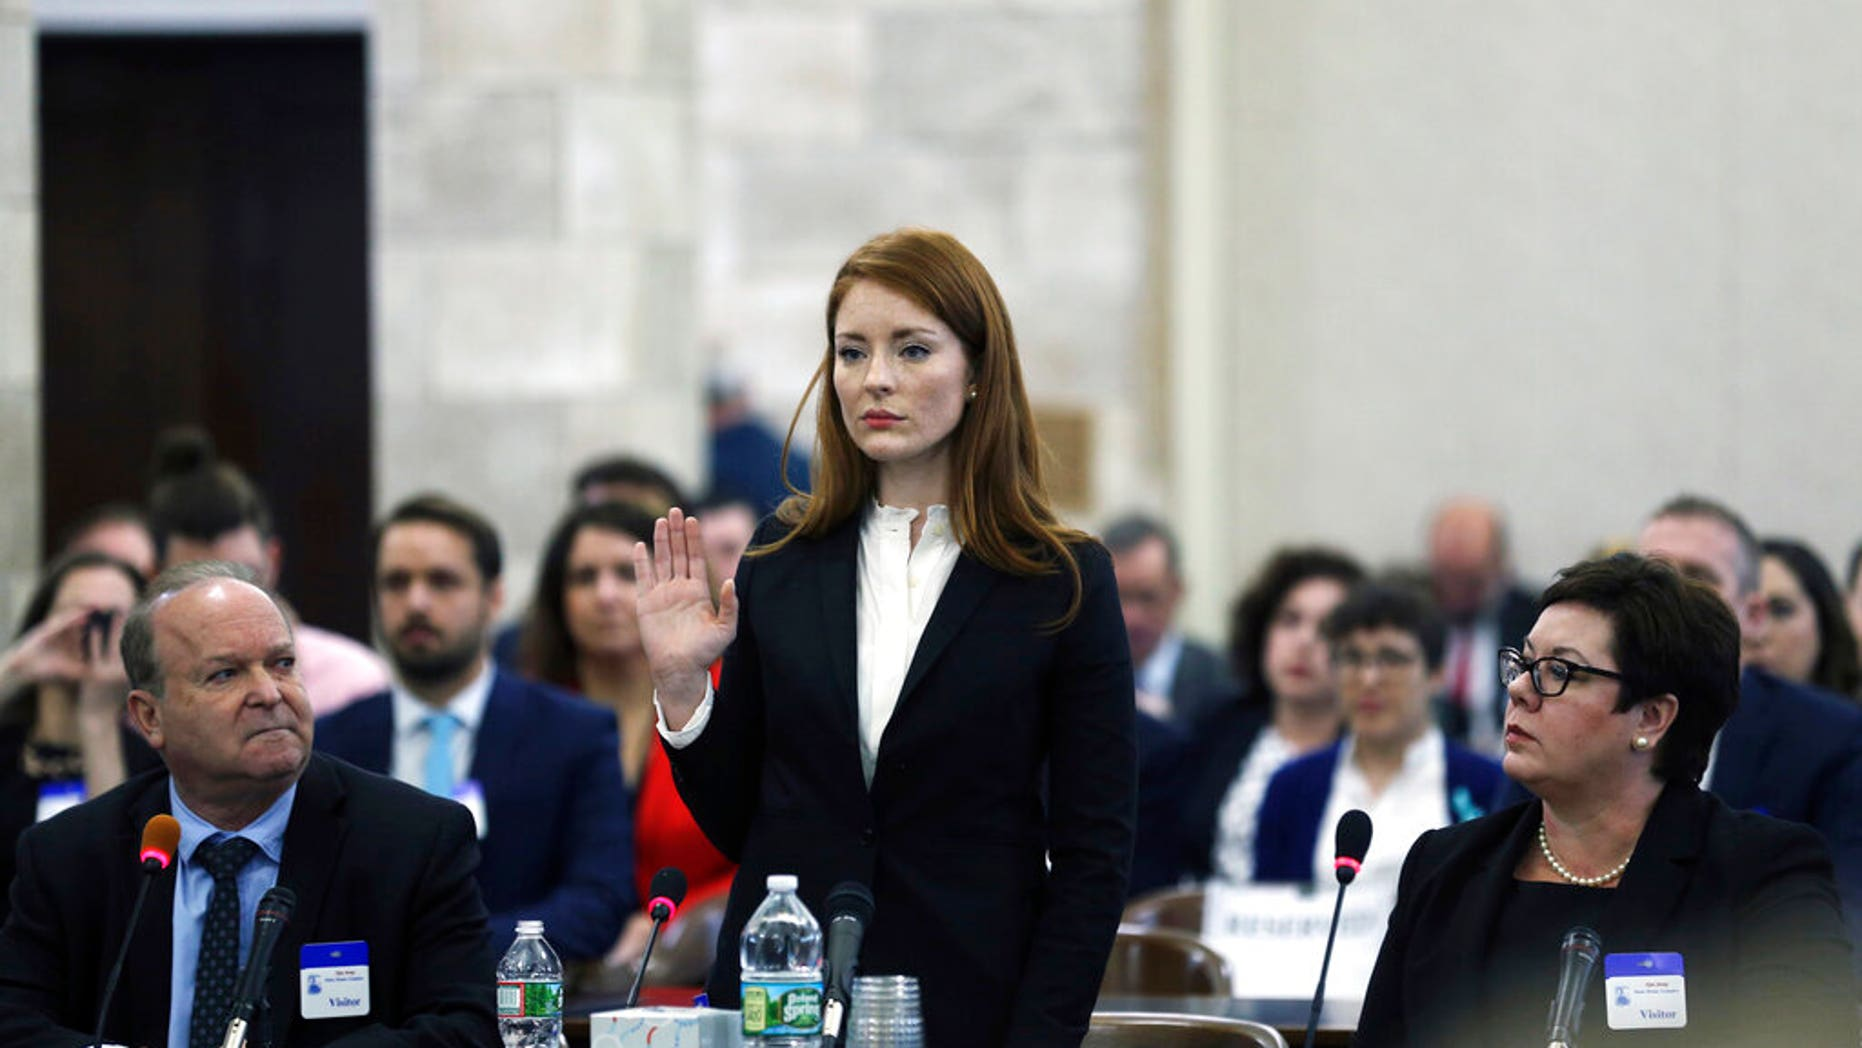 """FILE- In this Dec. 4, 2018, file photo, Katie Brennan, the chief of staff at the New Jersey Housing and Mortgage Finance Agency, raises her hand as she is sworn in to testify before the Select Oversight Committee at the Statehouse, in Trenton, On Wednesday, the Middlesex County Prosecutor's office said that it would not be filing charges against Albert Alvarez, whom Brennan accused of sexually assaulting her in 2017, when they were both working to get Gov. Phil Murphy elected, citing """"a lack of credible evidence."""" (AP Photo/Mel Evans, File)"""